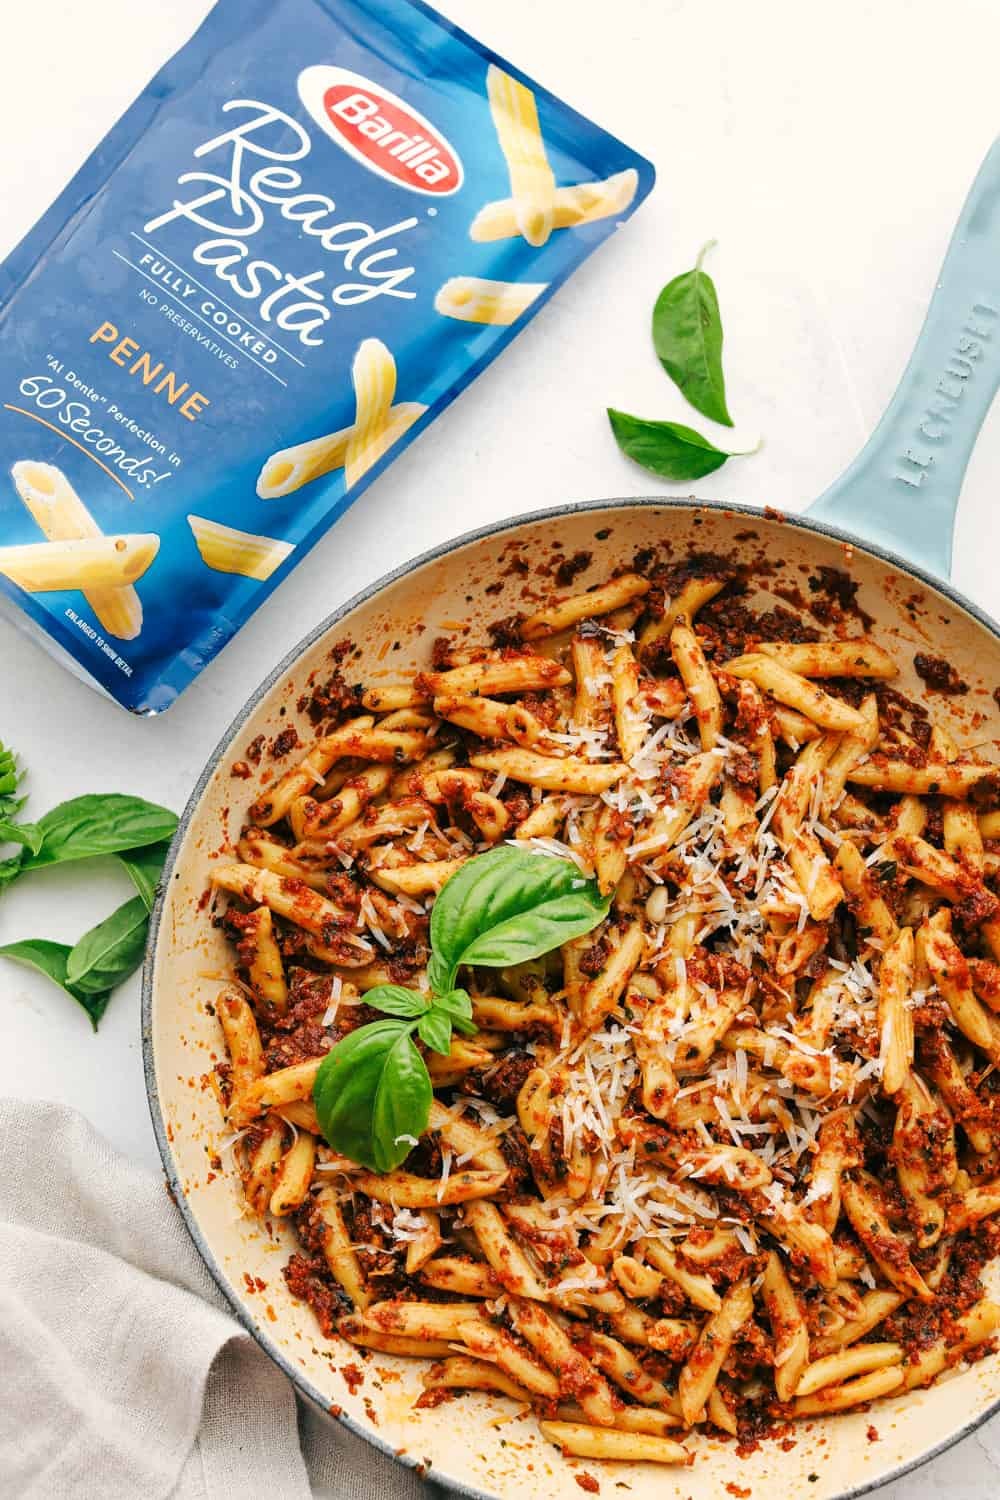 Sun dried tomato pesto pasta in a skillet with a package of ready pasta.